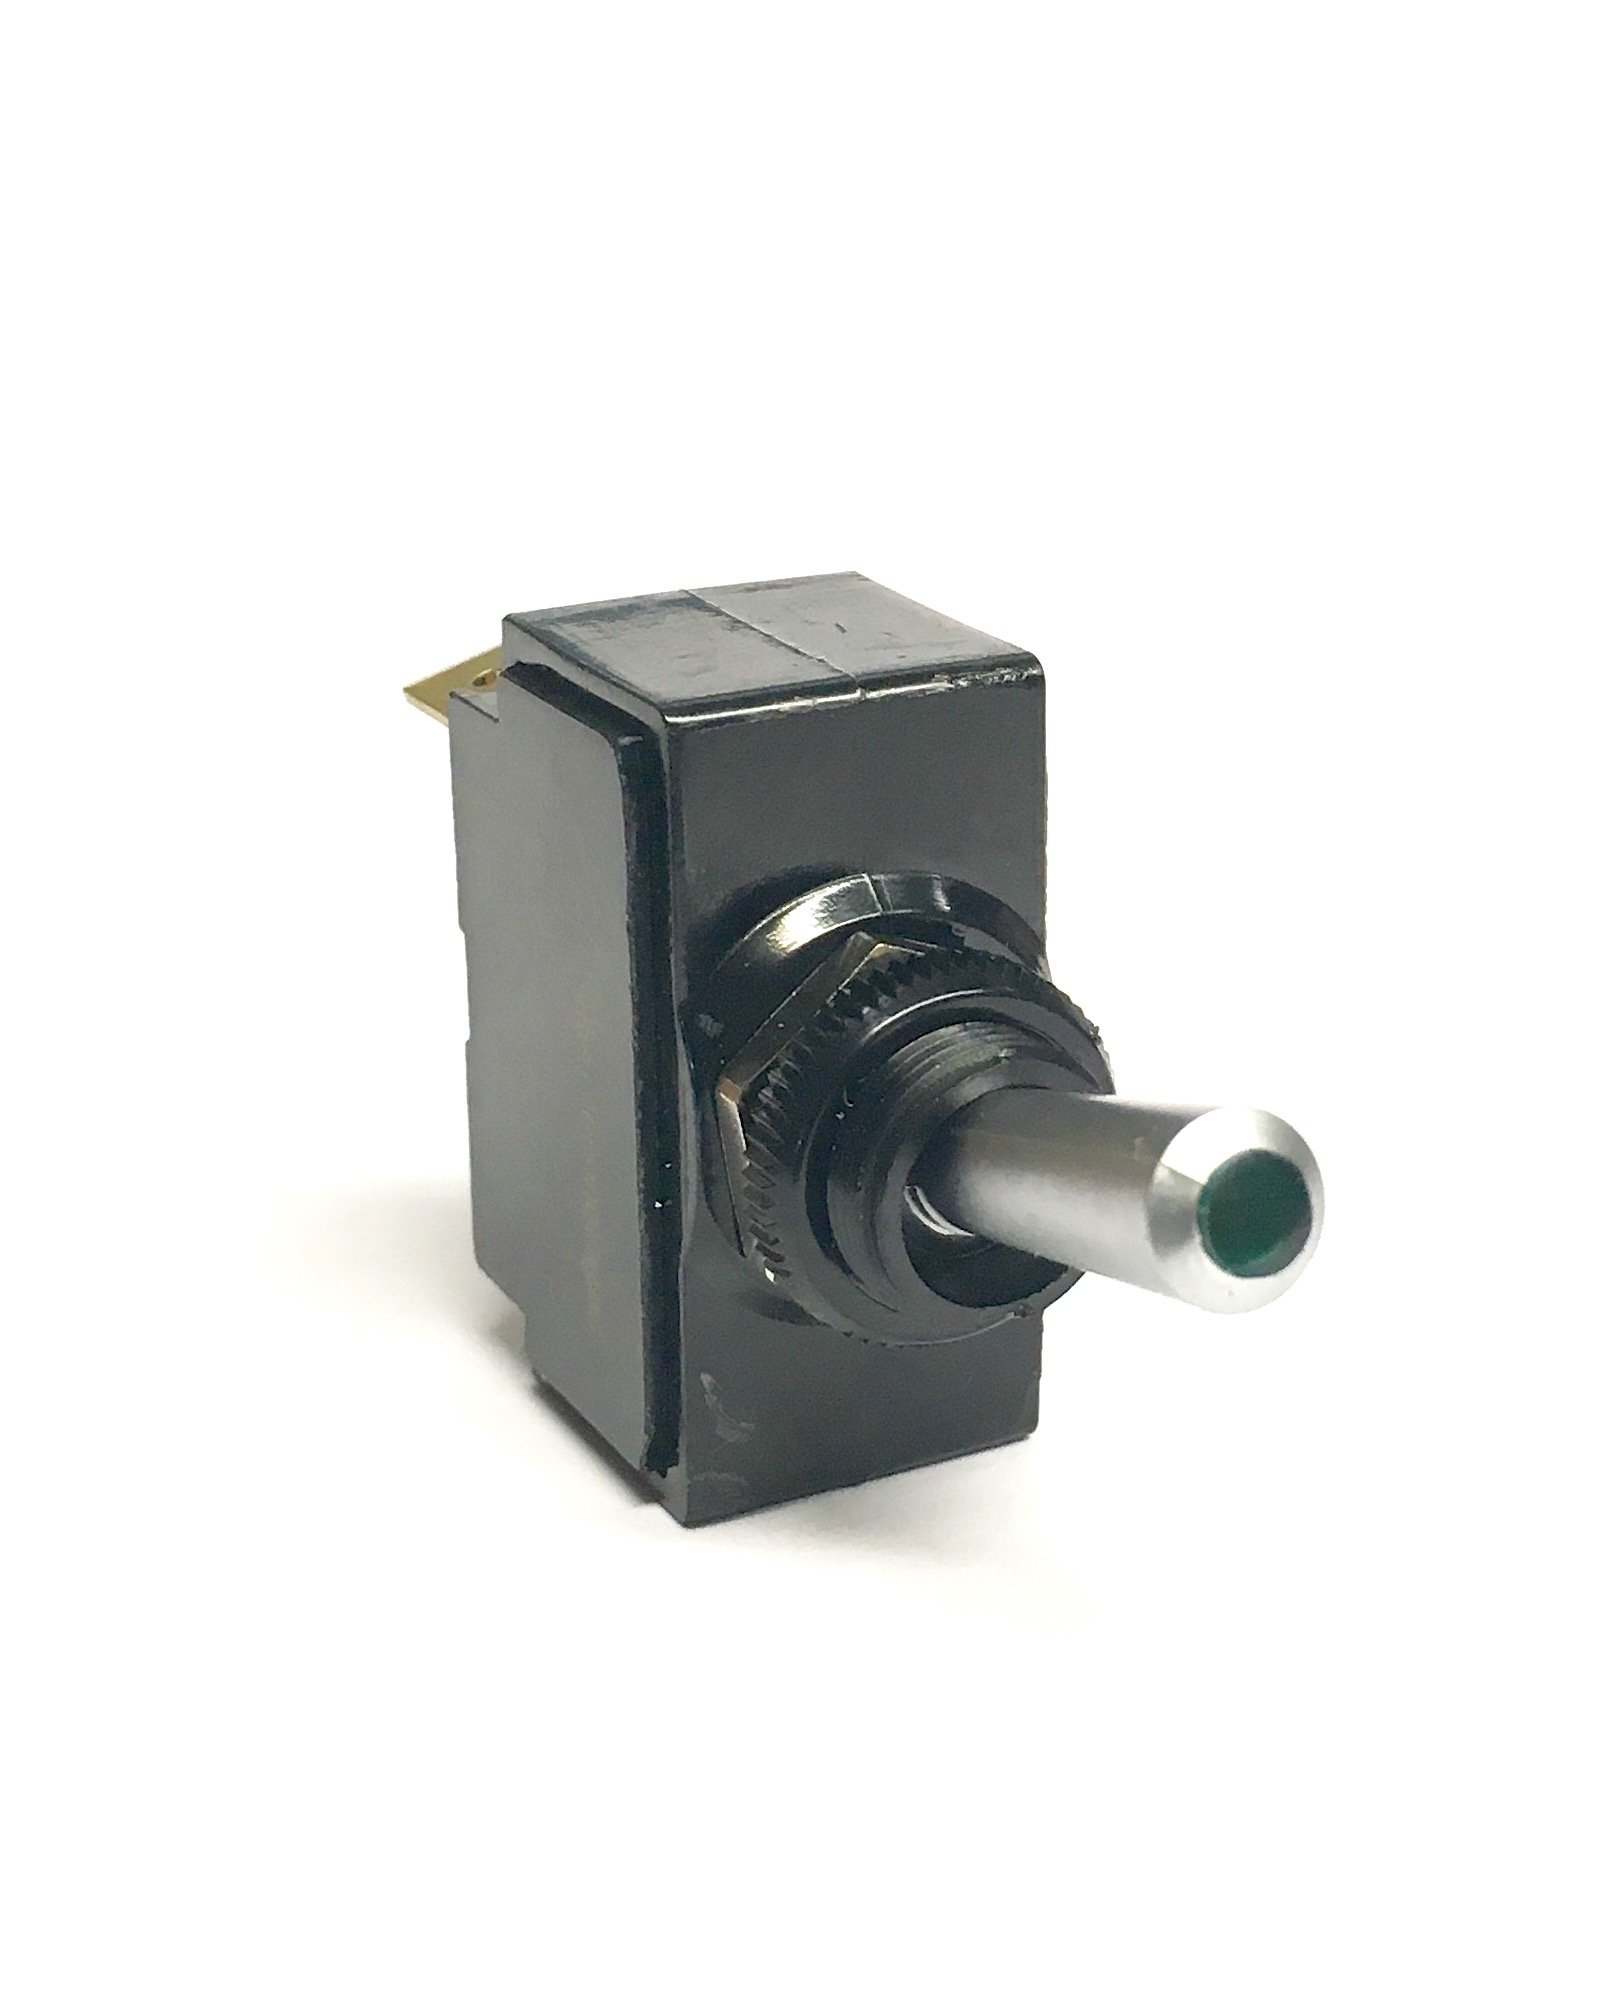 Toggle Switch ON/OFF, SPST, Lighted Green Lens